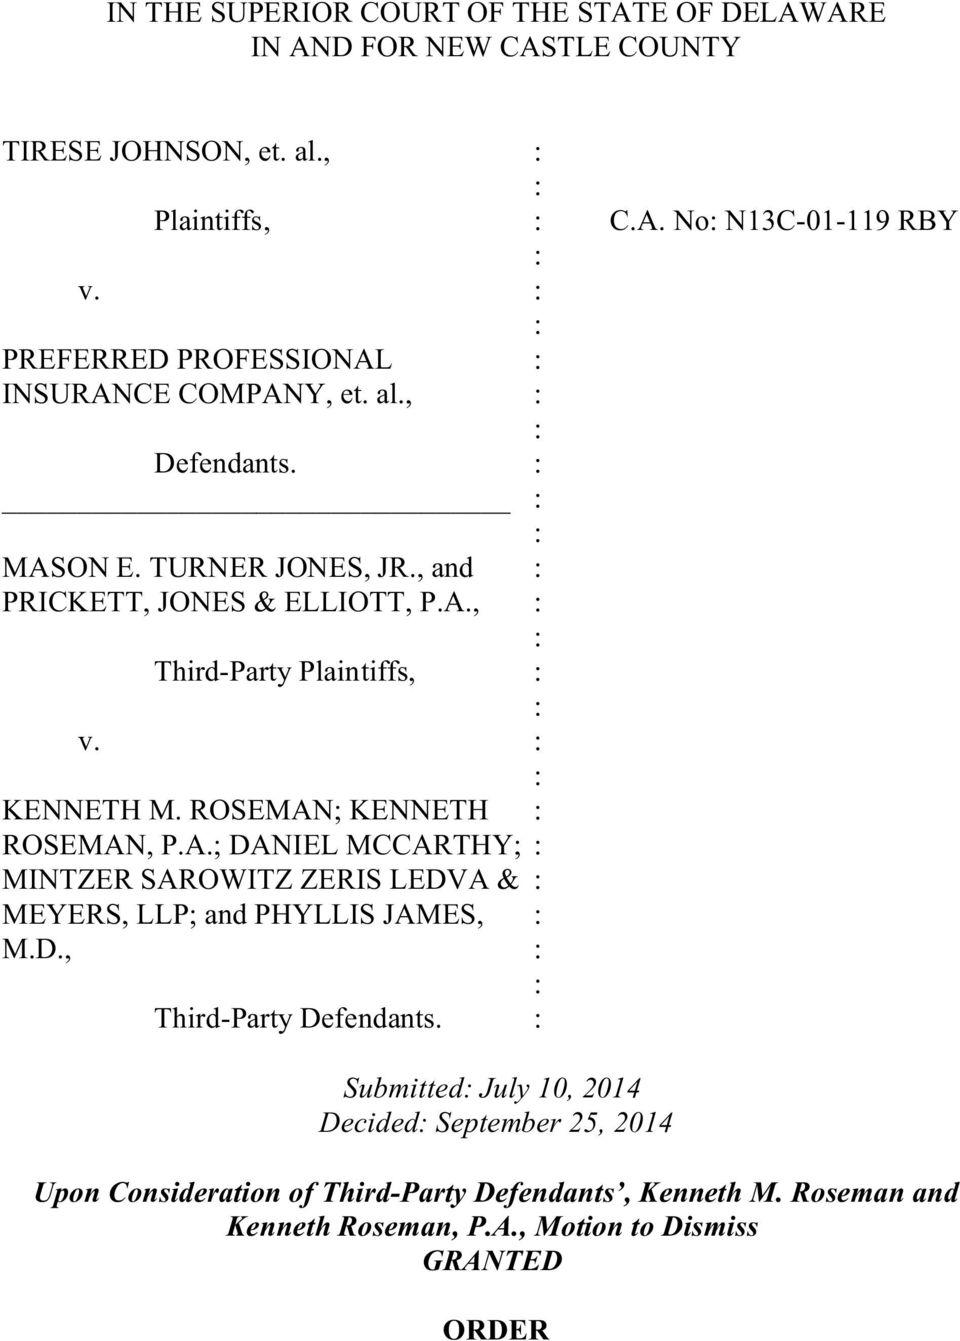 KENNETH M. ROSEMAN; KENNETH ROSEMAN, P.A.; DANIEL MCCARTHY; MINTZER SAROWITZ ZERIS LEDVA & MEYERS, LLP; and PHYLLIS JAMES, M.D., Third-Party Defendants.